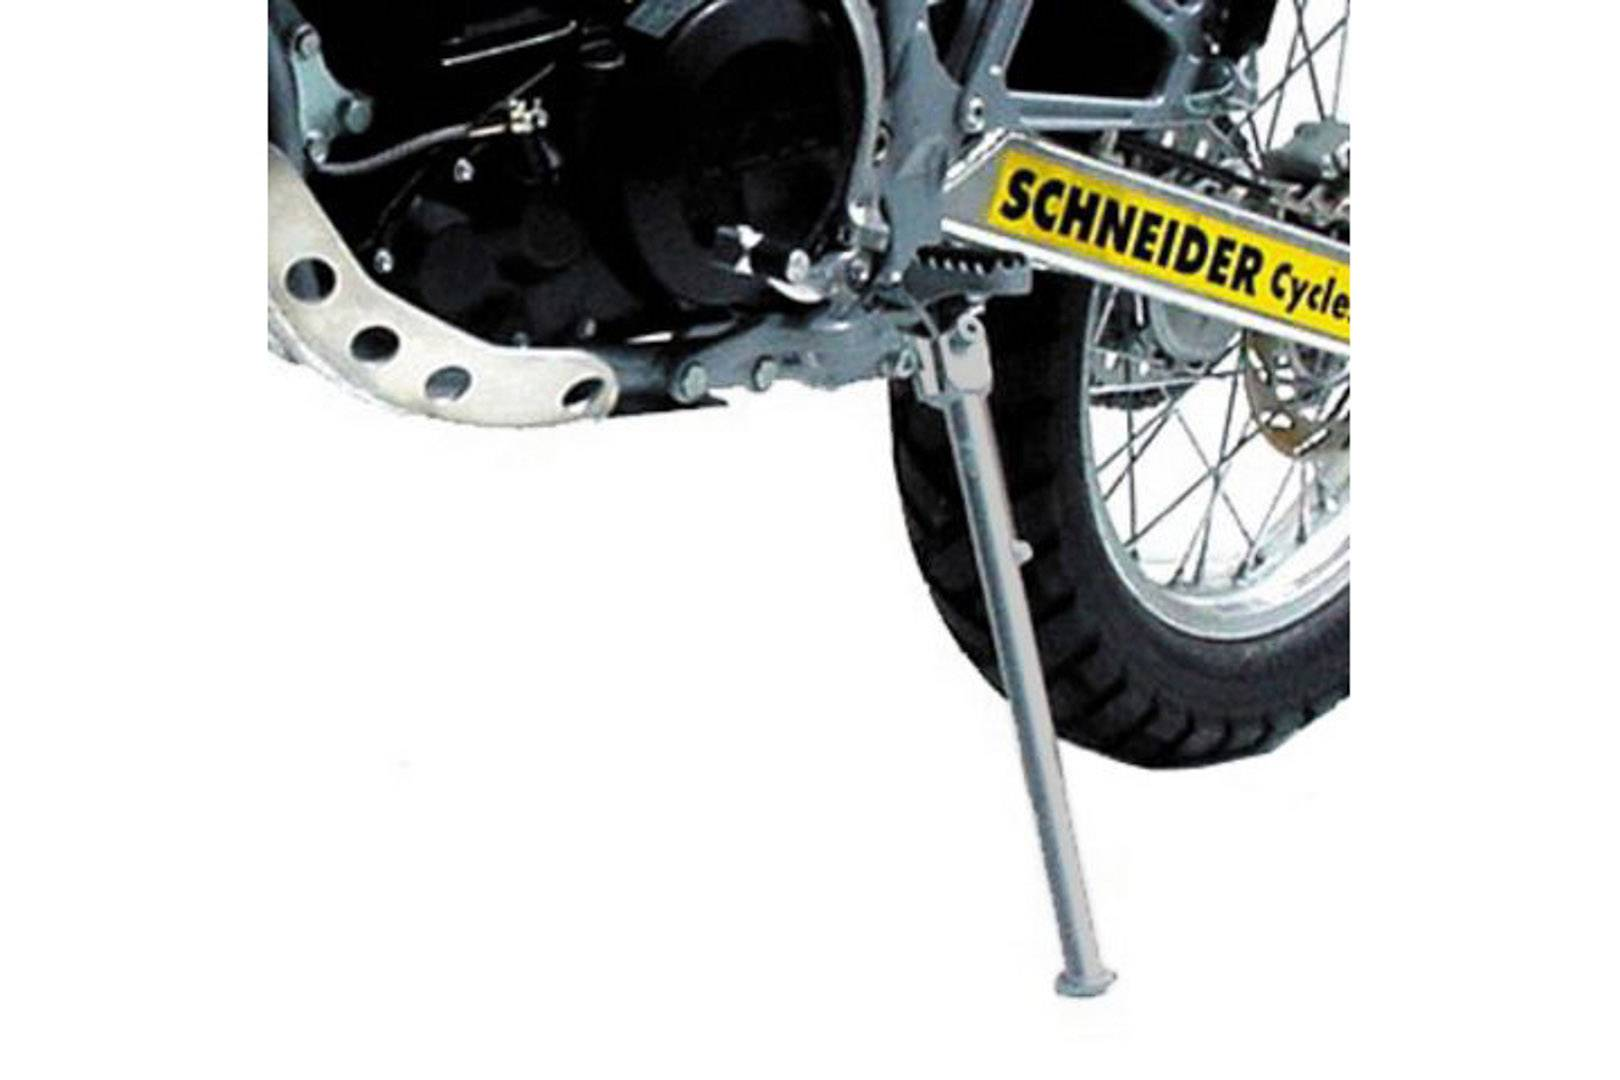 sw motech side stand grey wheel size front